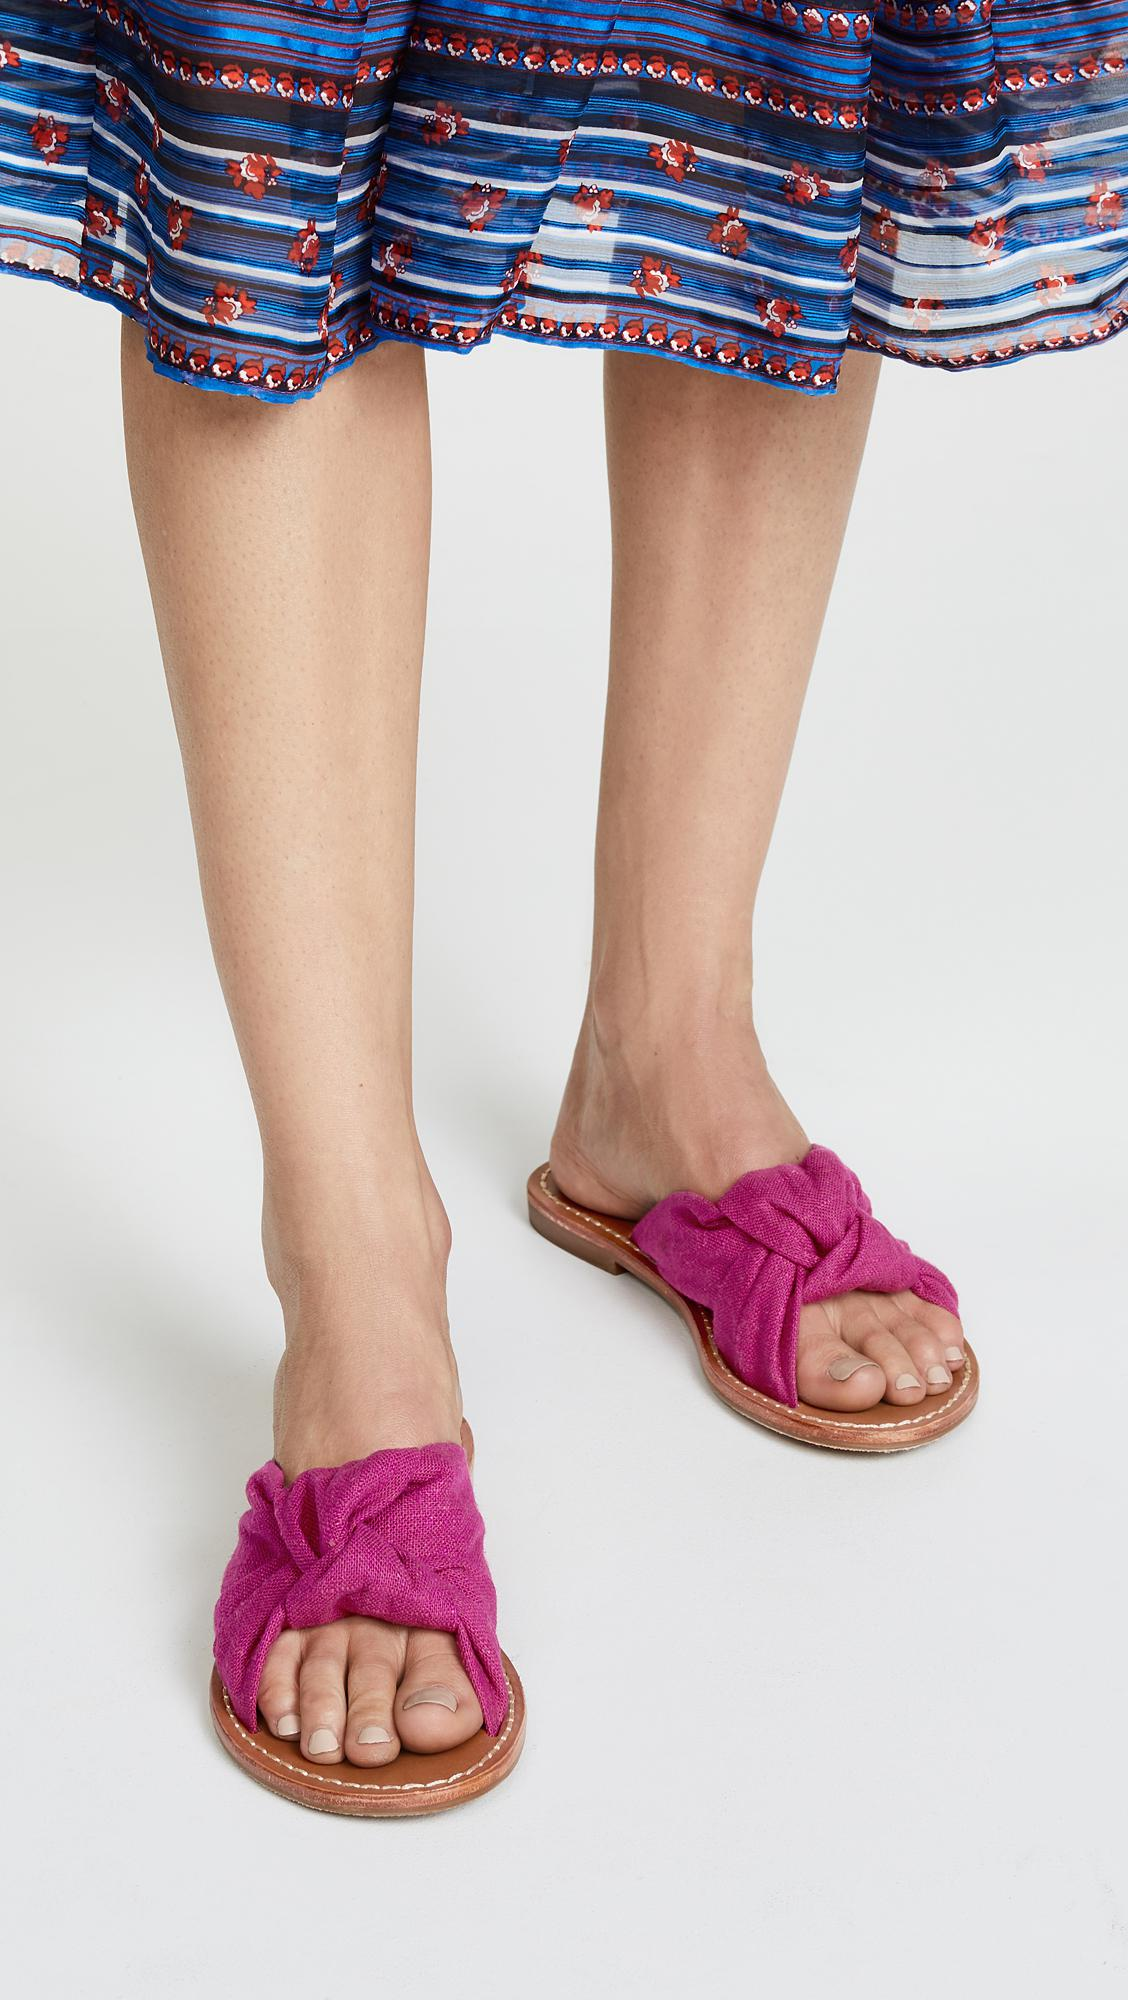 fc8f0d4470cb Lyst - Soludos Knotted Slide Sandals in Purple